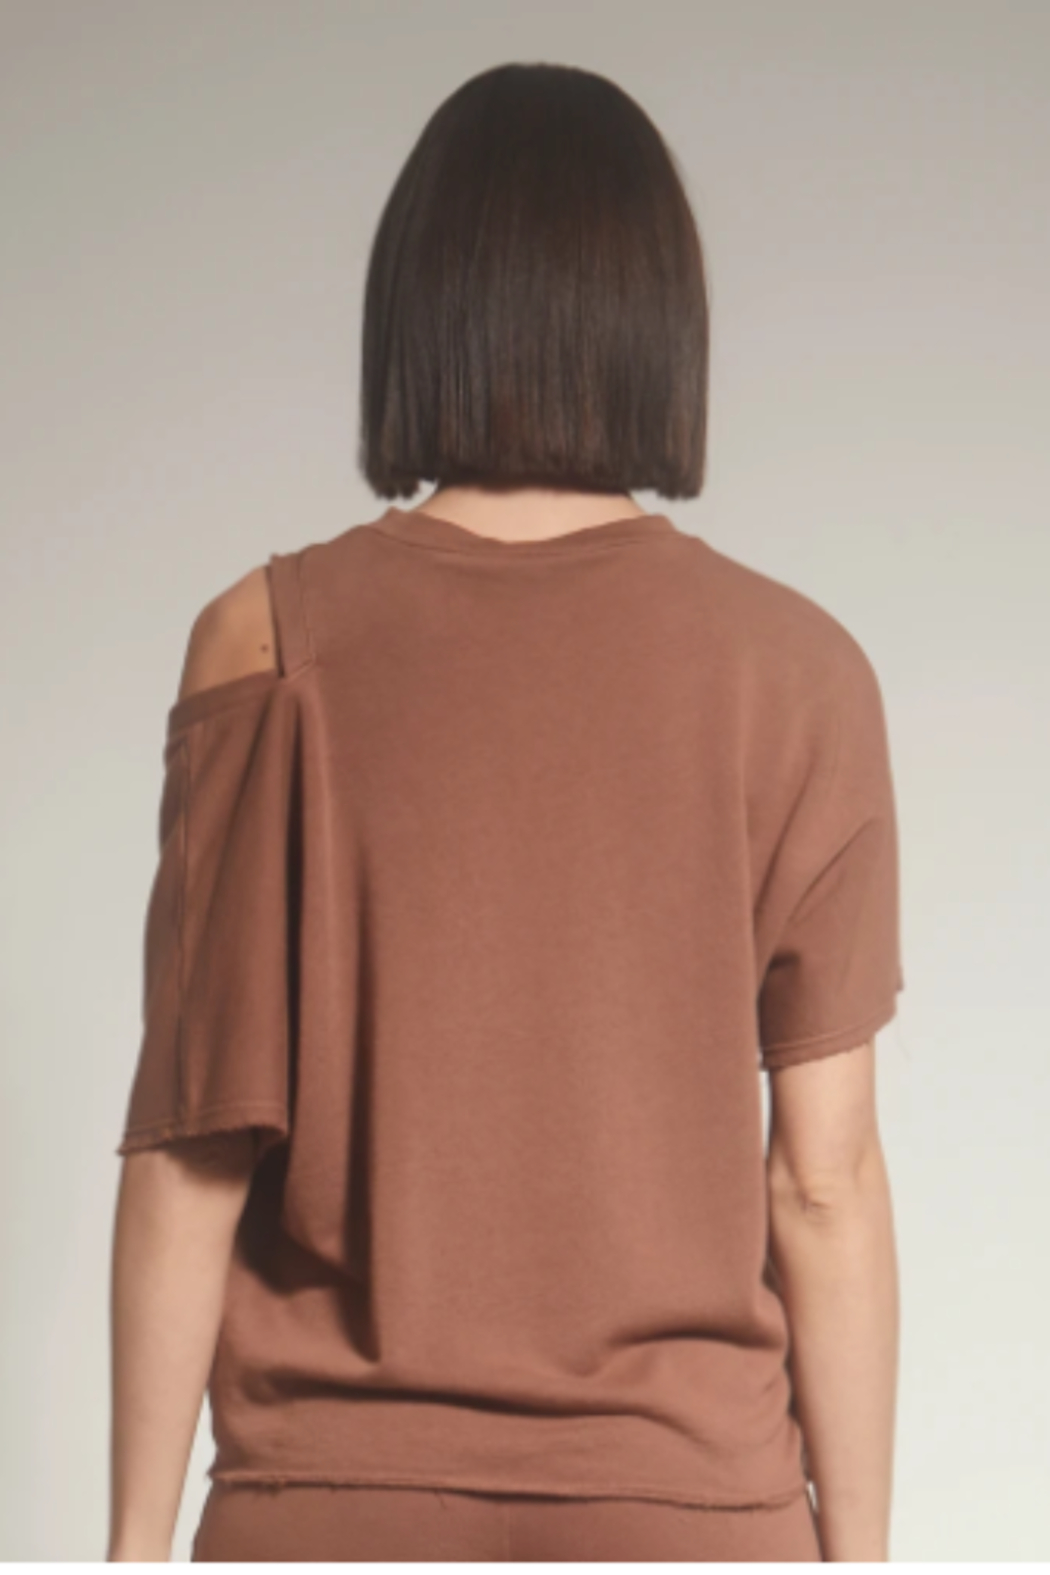 lanston sport One shoulder cut out Tee - Front Full Image